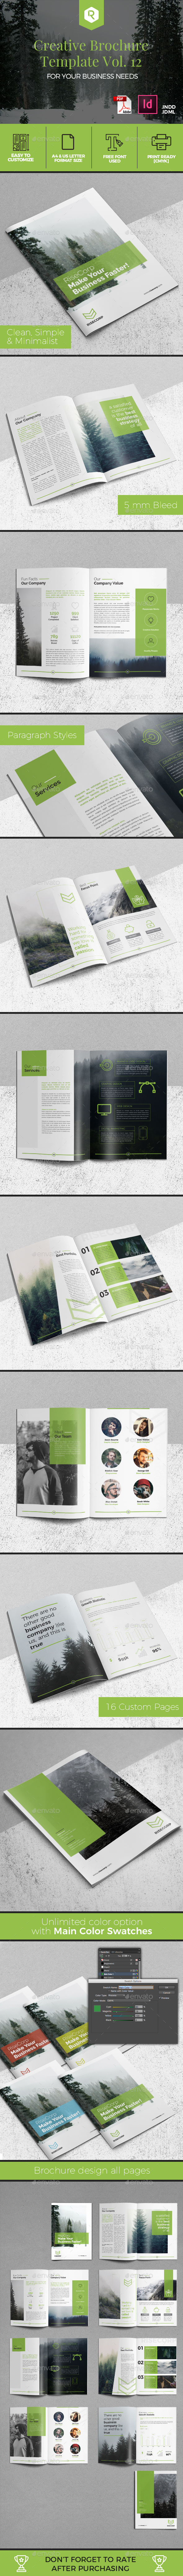 Creative Brochure Template Vol. 12 - Corporate Brochures